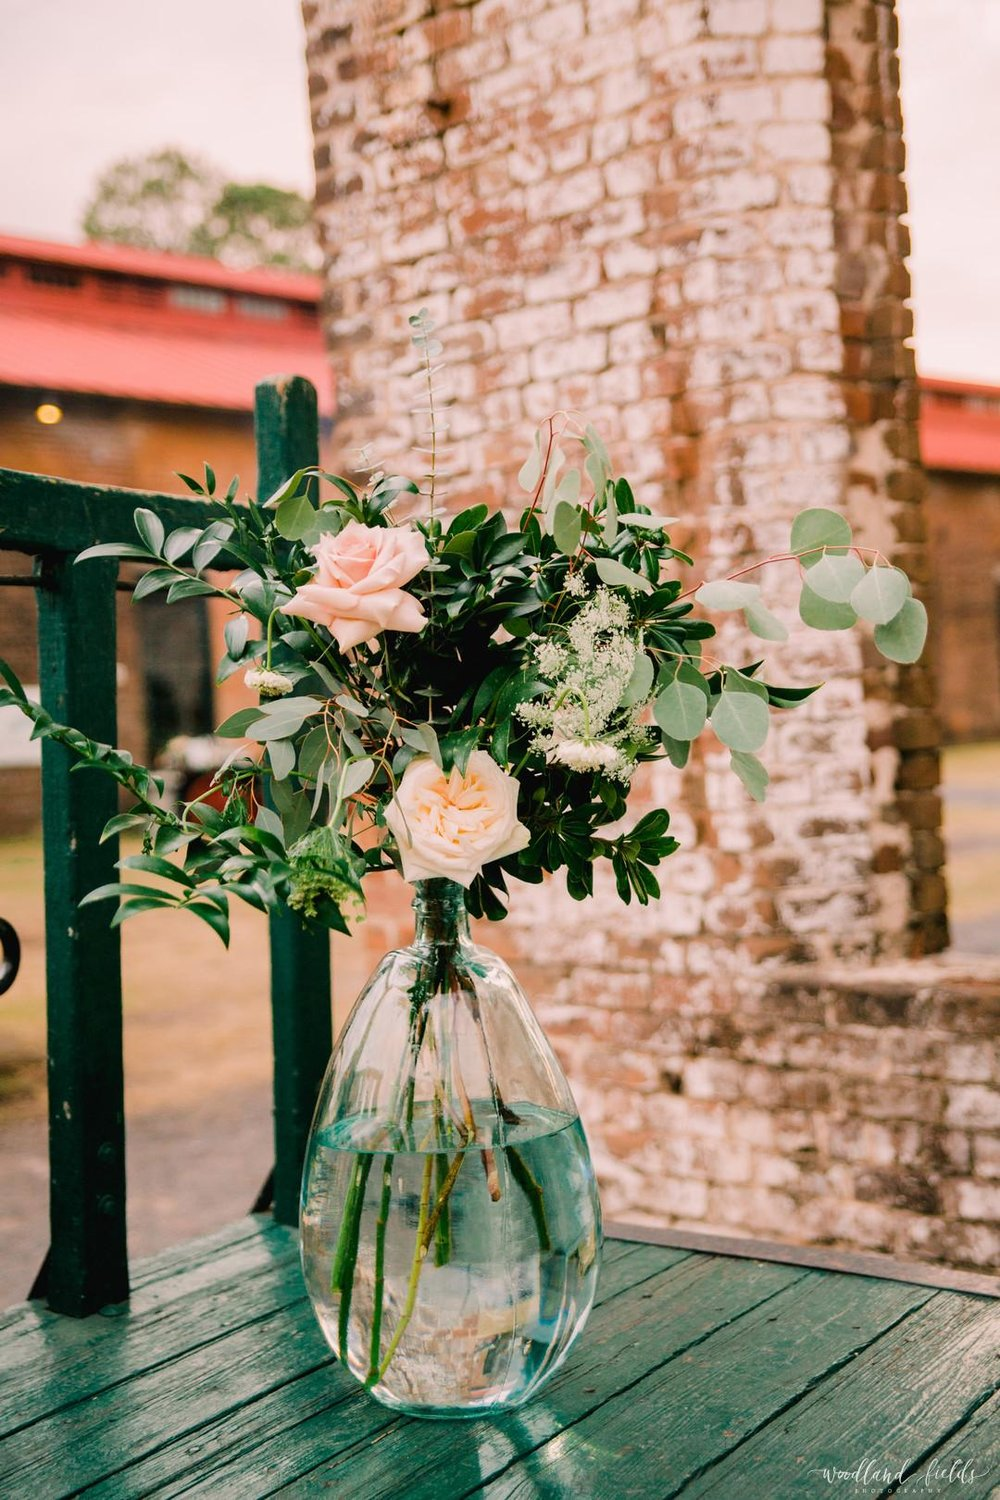 savannah-bridal-shop-ivory-and-beau-bridal-boutique-beth-and-jesse-woodland-fields-photography-georgia-railroad-museum-wedding-19.jpg